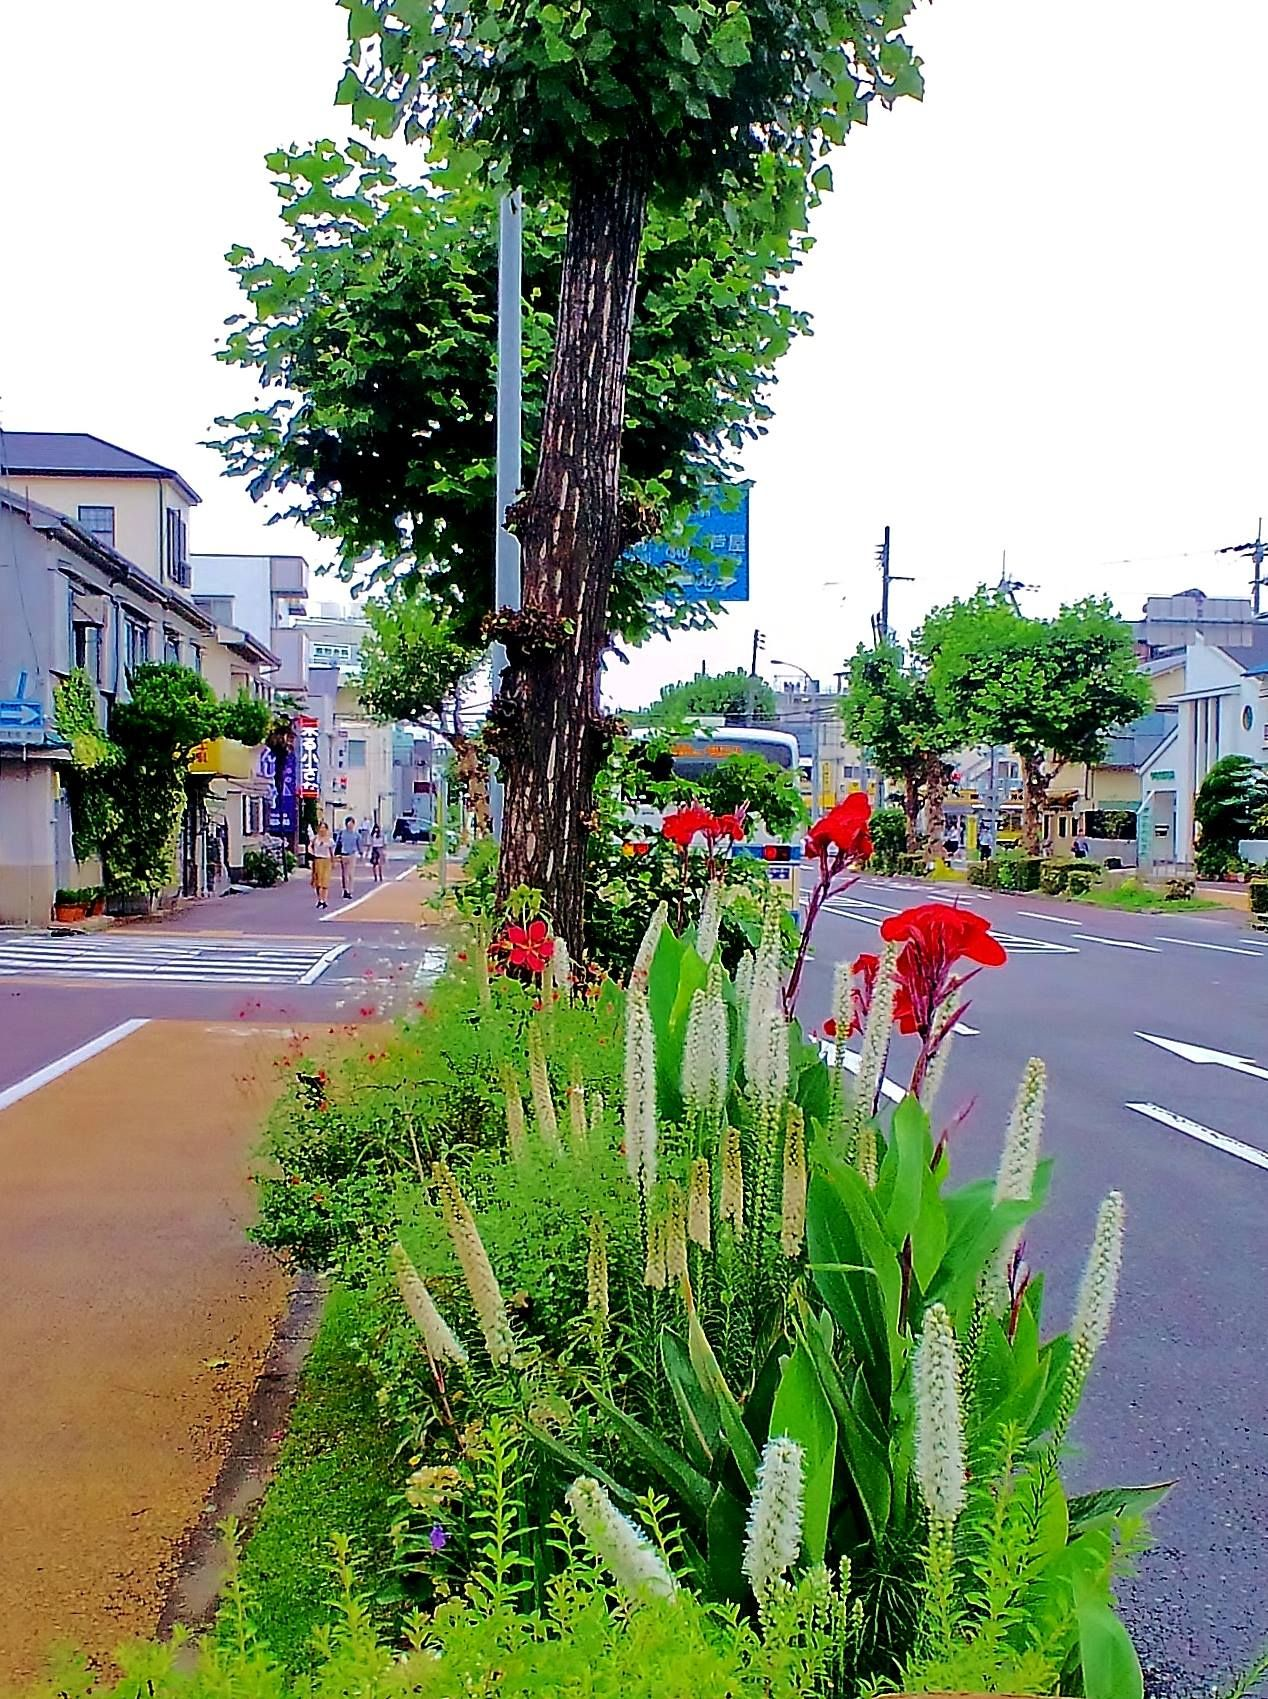 ■ Roadside garden ・・Liatris with Canna・・